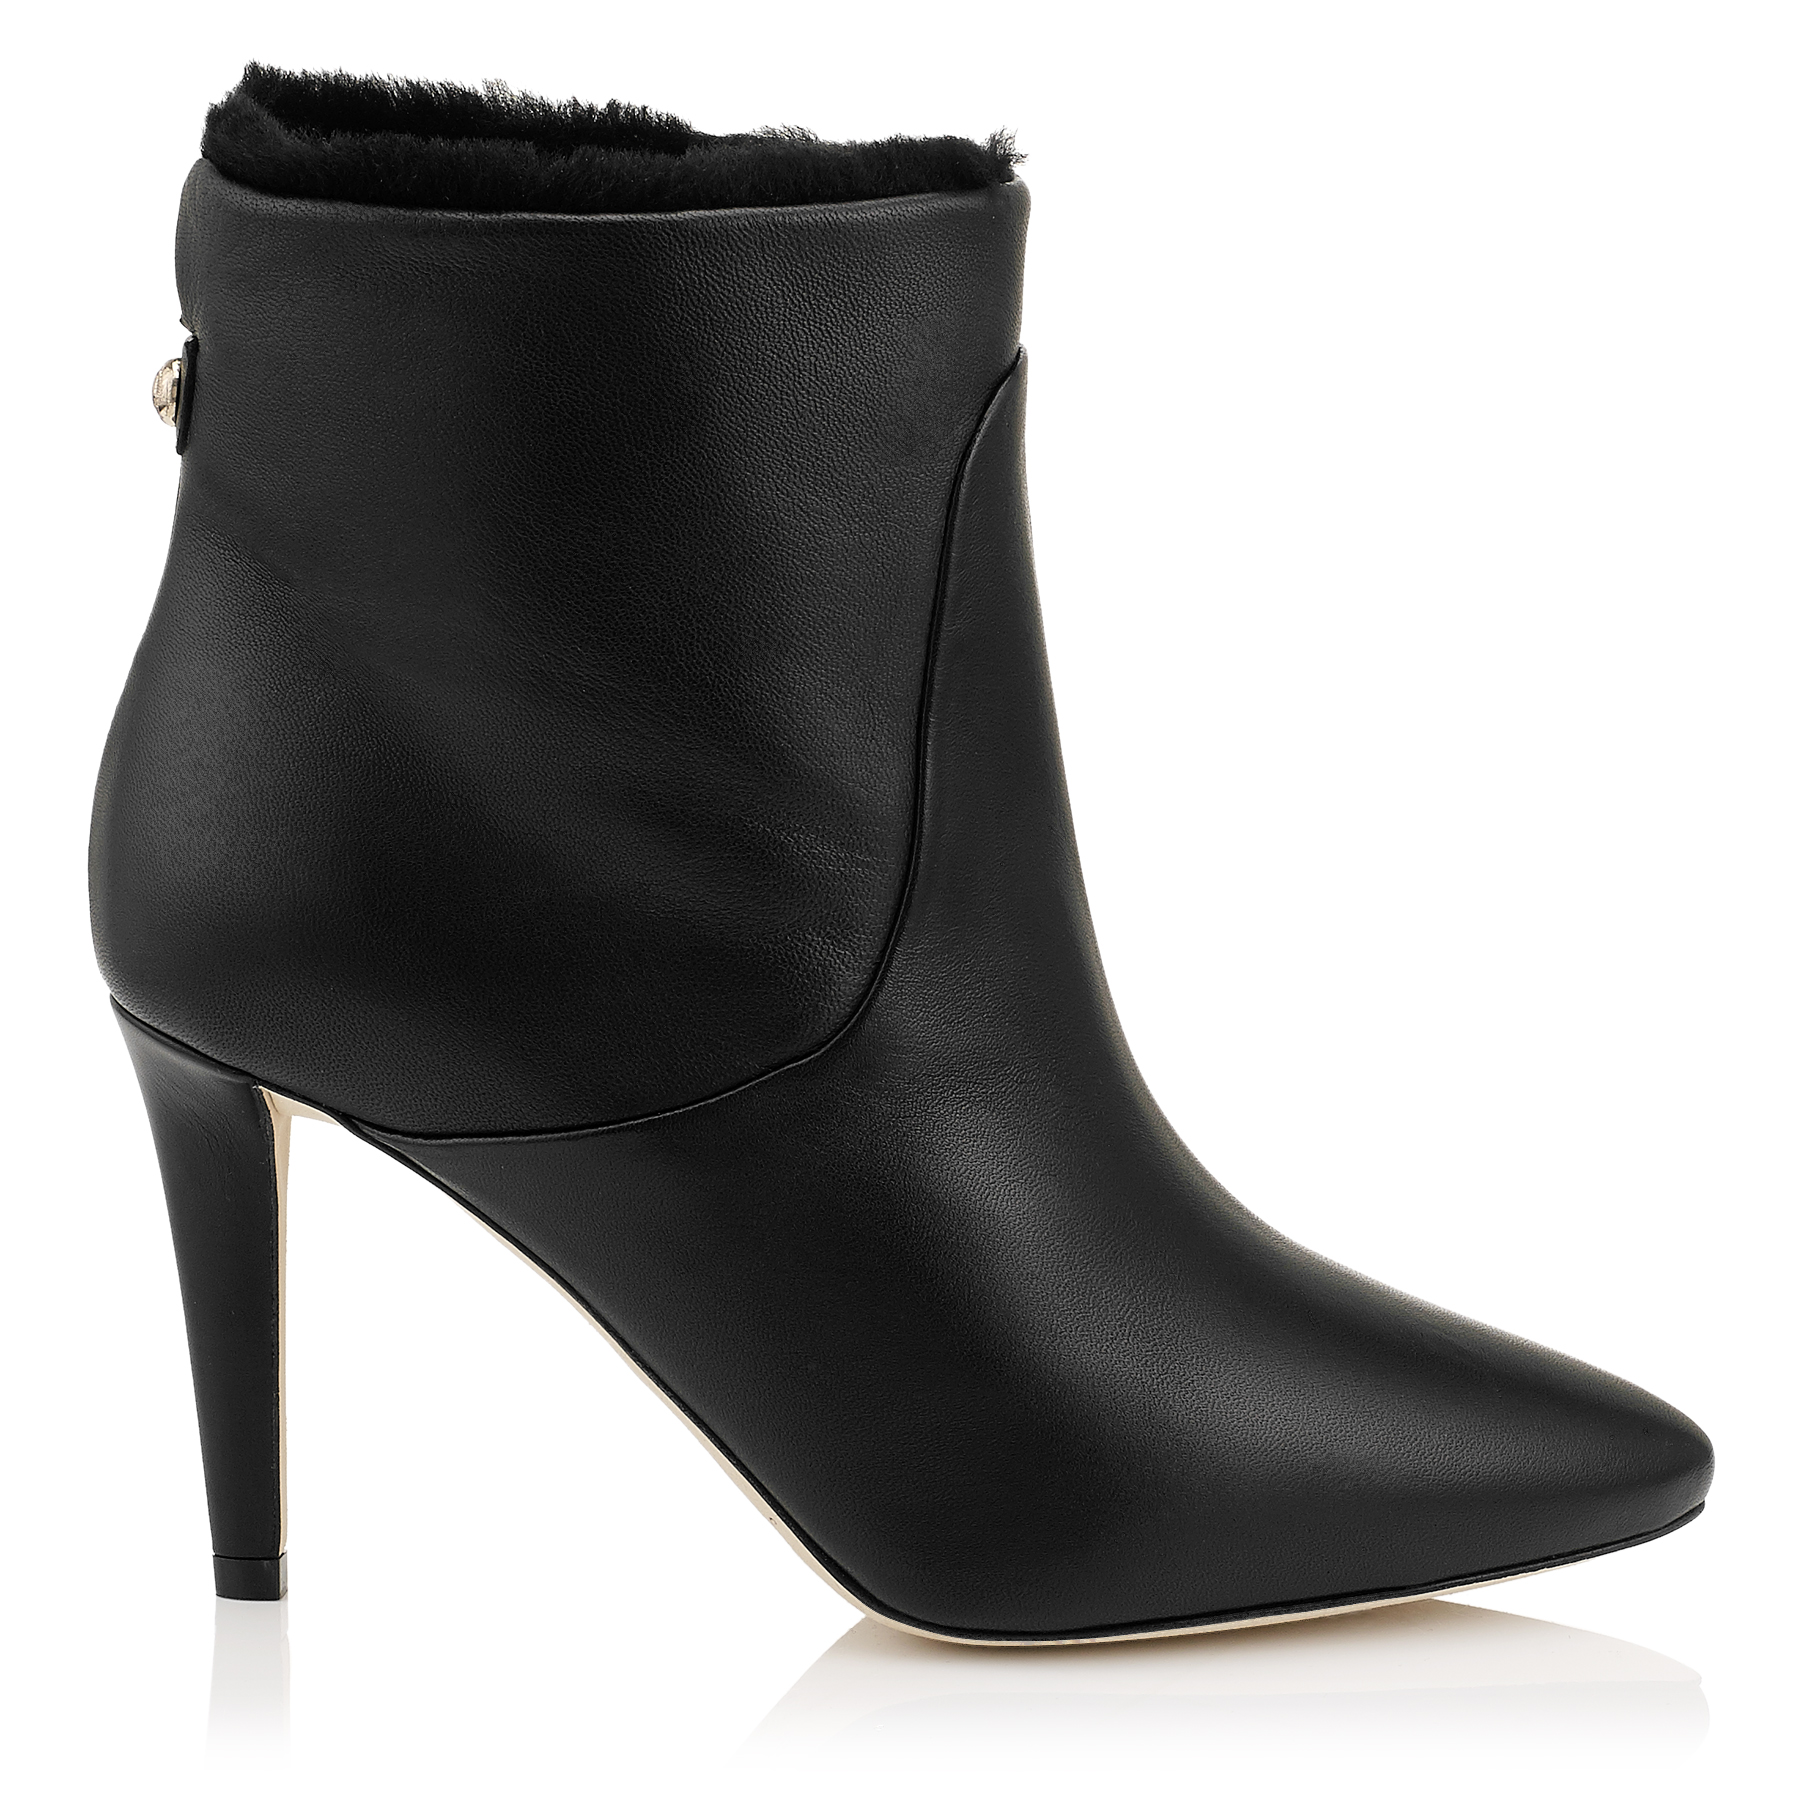 MISSION 85 Black Nappa Leather and Shearling Lined Ankle Boots